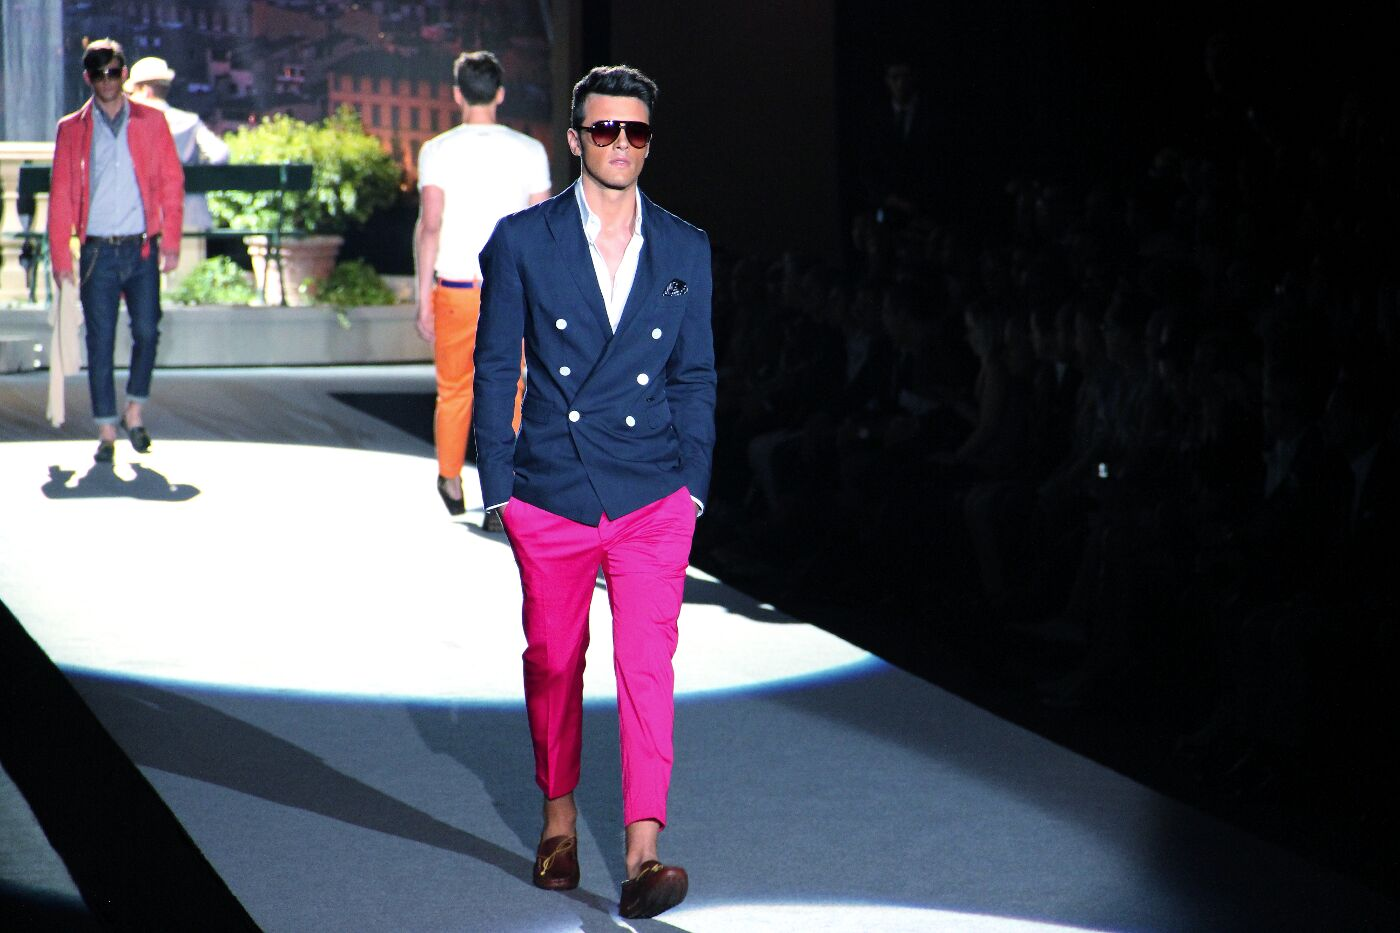 dsquared2-spring-summer-2012-men-collection-milano-fashion-week-2012-dsquared2-primavera-estate-dsquared2-fashion-show-catwalk-2012